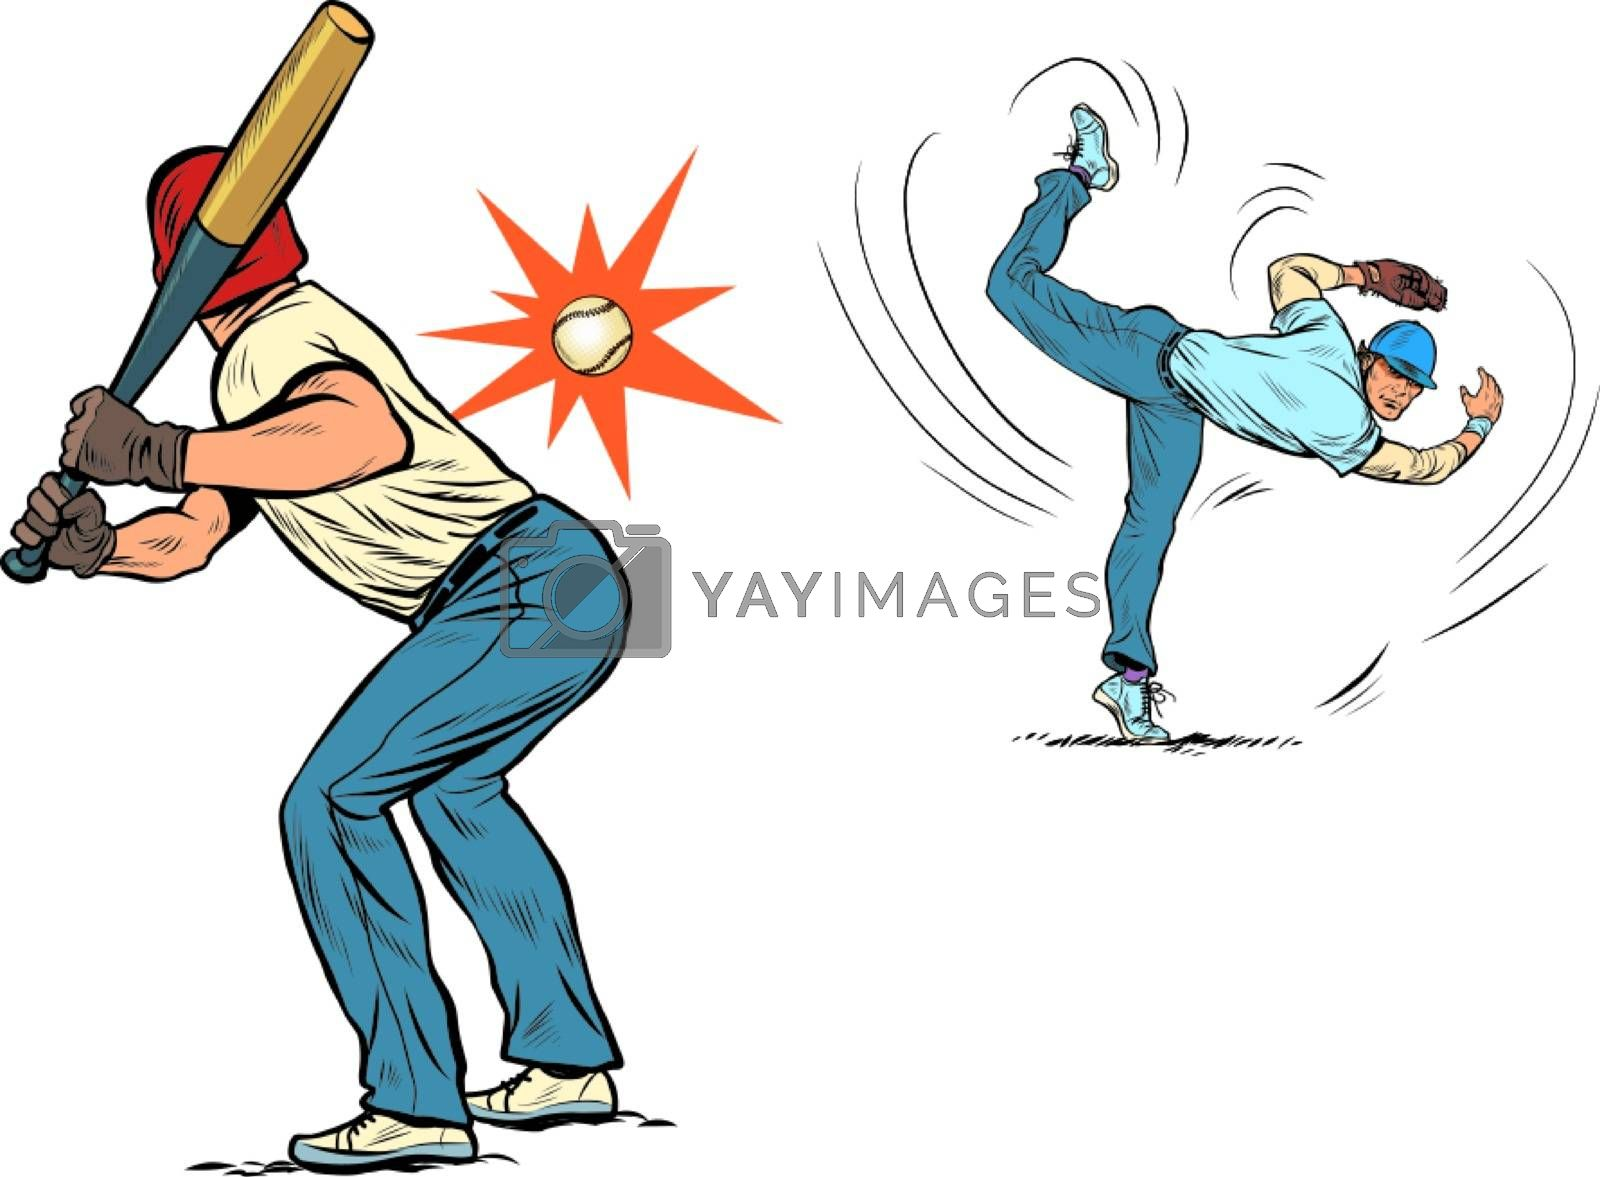 Game of baseball. The pitcher throws the ball. Pop art retro vector illustration 50s 60s style